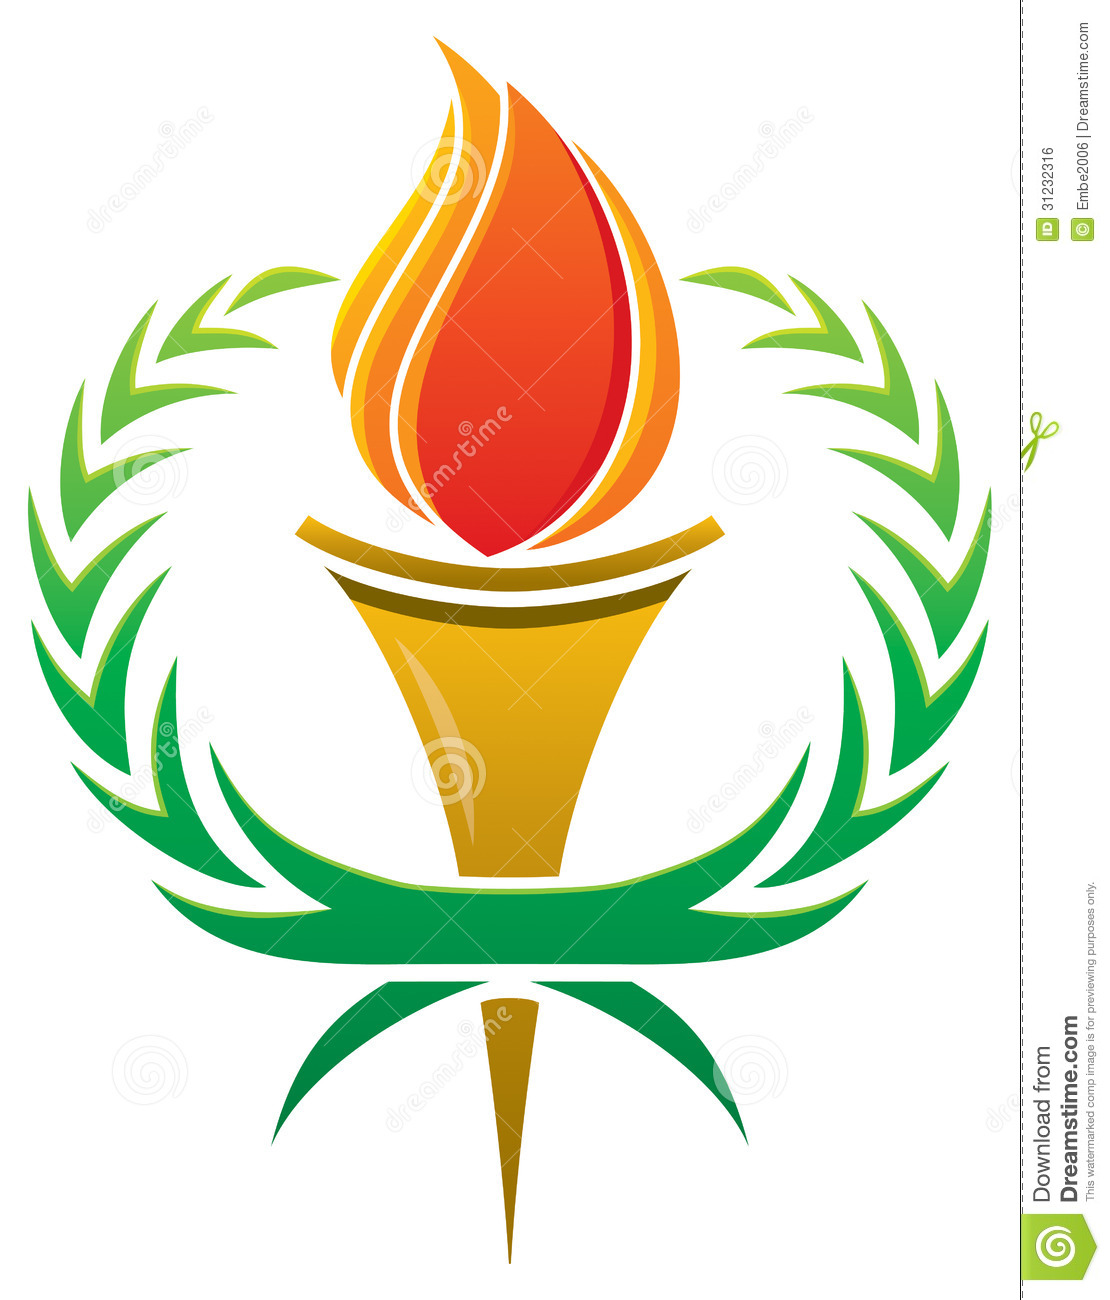 Flame Torch Logo stock vector. Illustration of laurel - 31232316 for Fire Torch Clipart  539wja